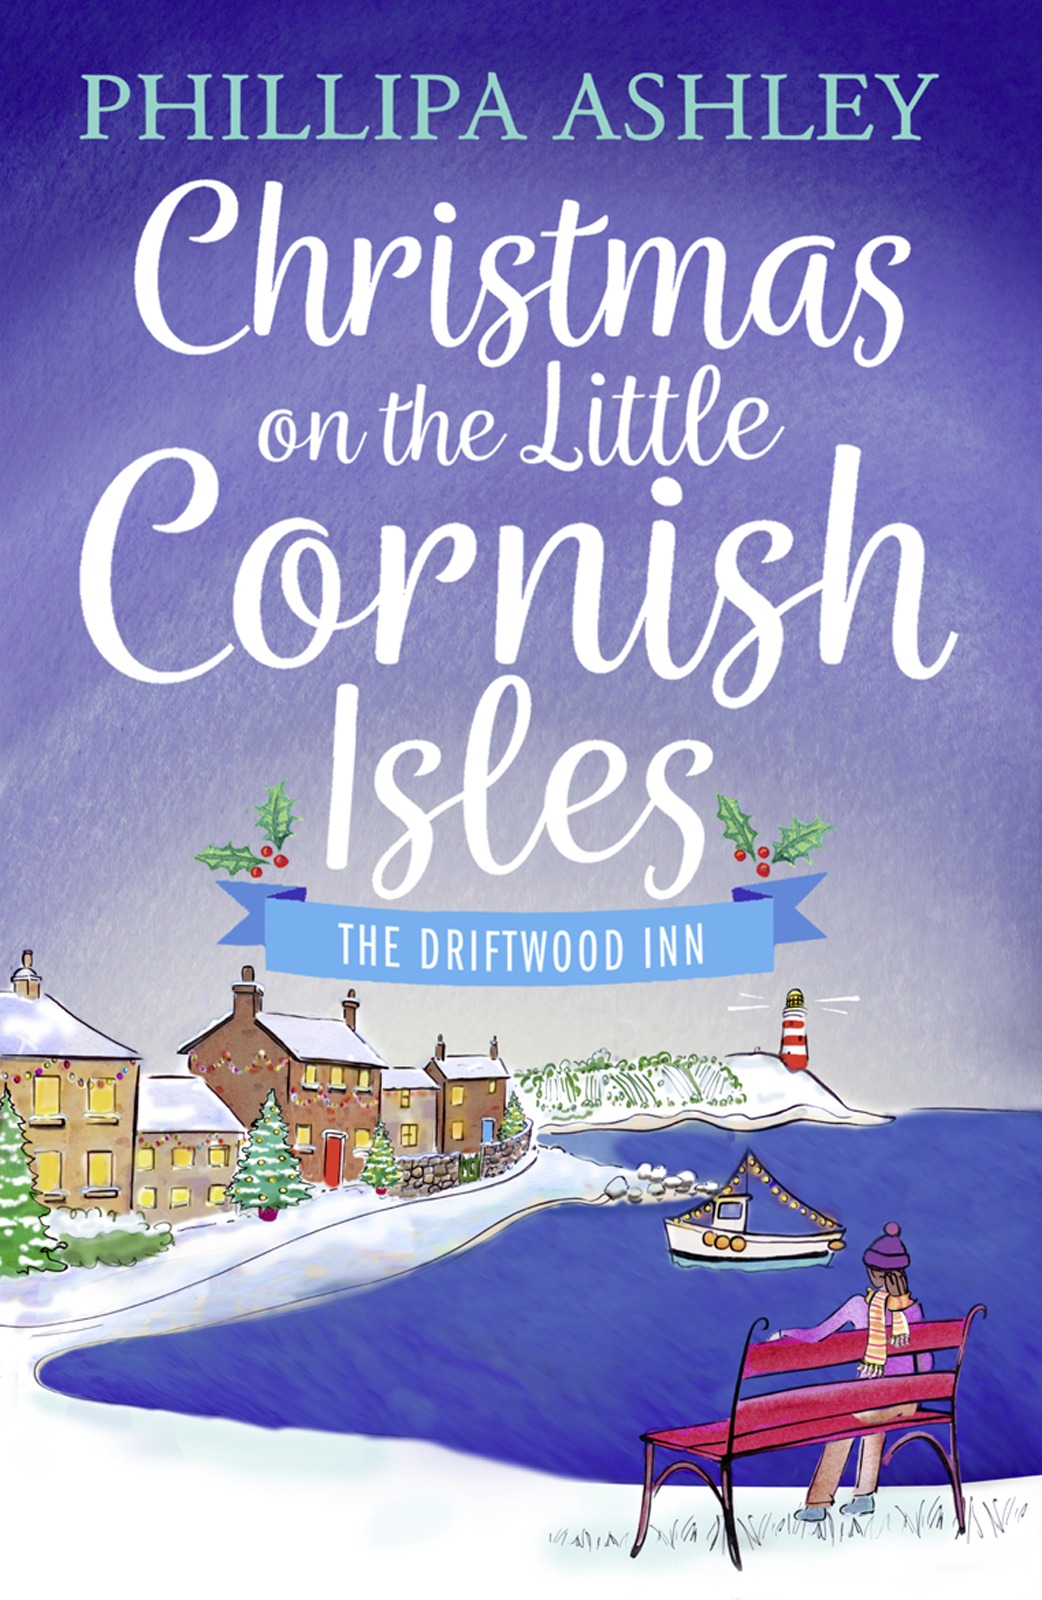 Phillipa Ashley Christmas on the Little Cornish Isles: The Driftwood Inn the british isles cd